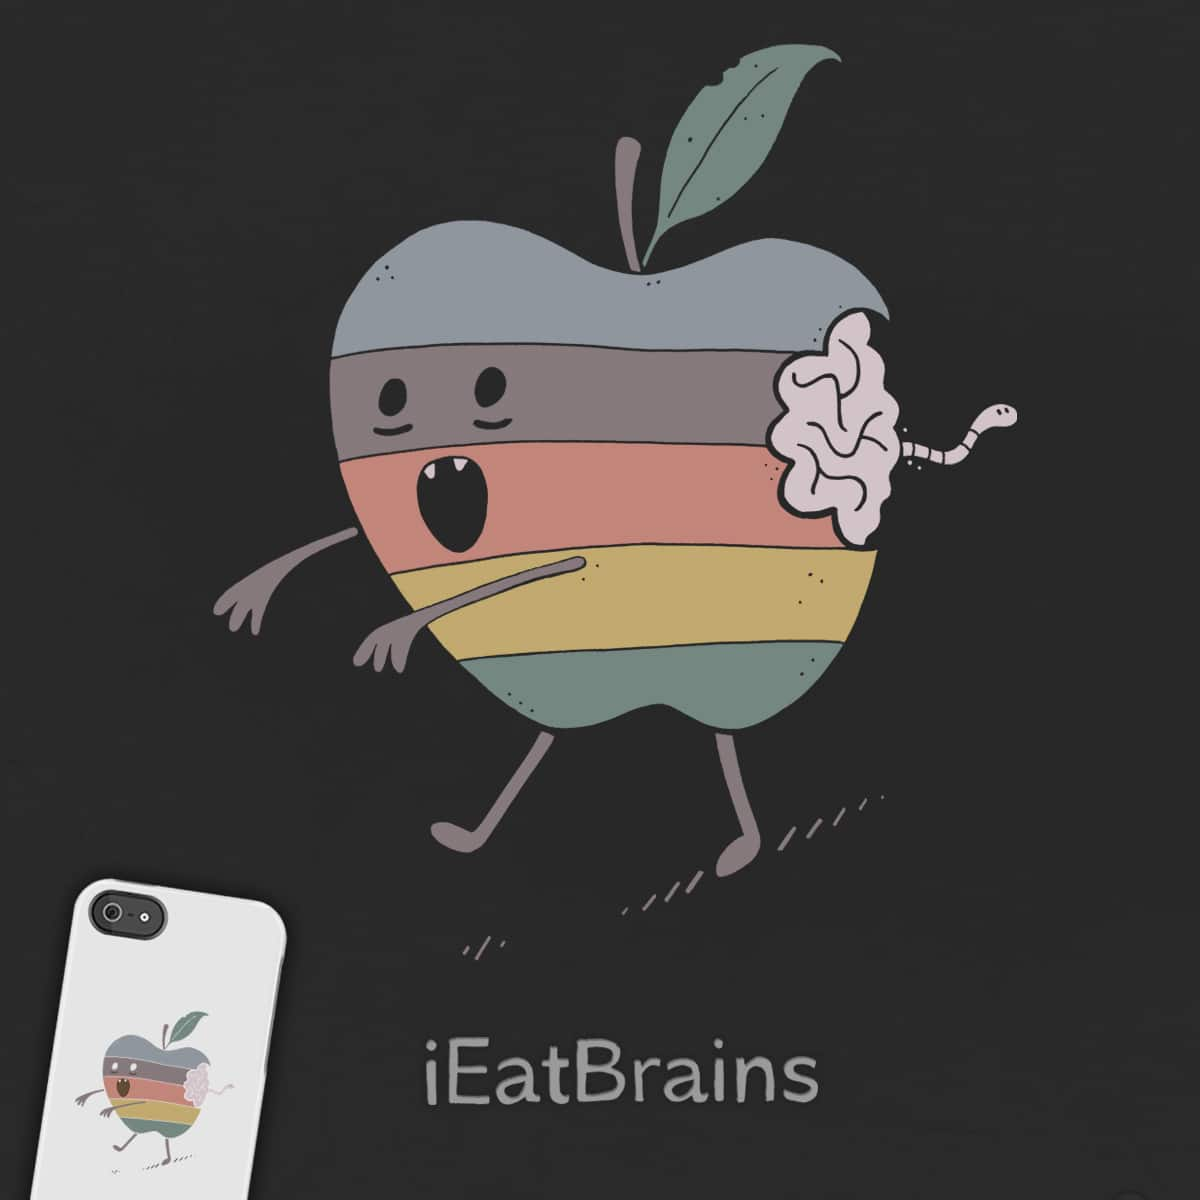 iEatBrains by ThePaperCrane on Threadless